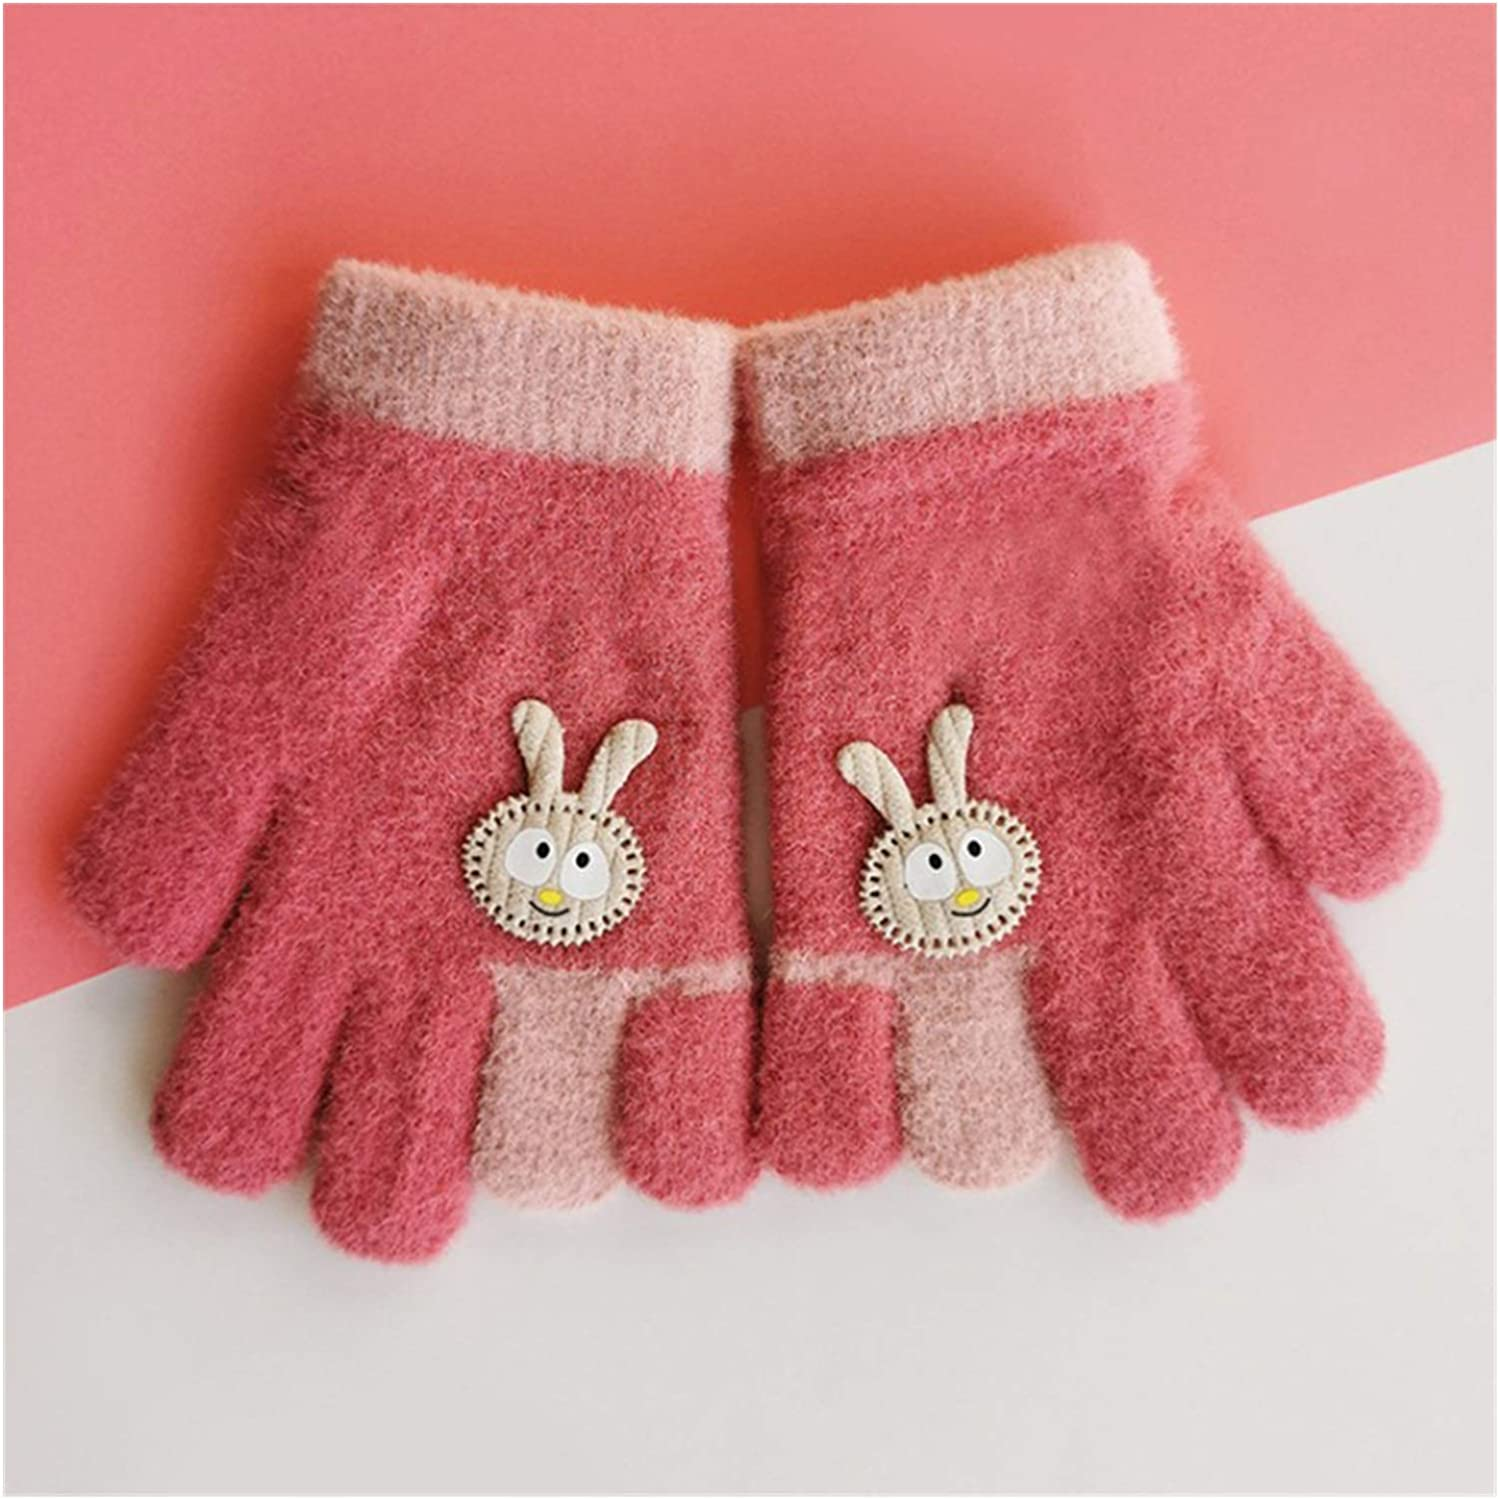 GUYANMAY Lace Gloves New Children's Winter Knitted Gloves 3-6 Years Warm Soft Rabbit Wool Cartoons Kids Gloves Child Full Finger Boys Girls Mittens (Color : 10, Gloves Size : 3 6 Years Old)